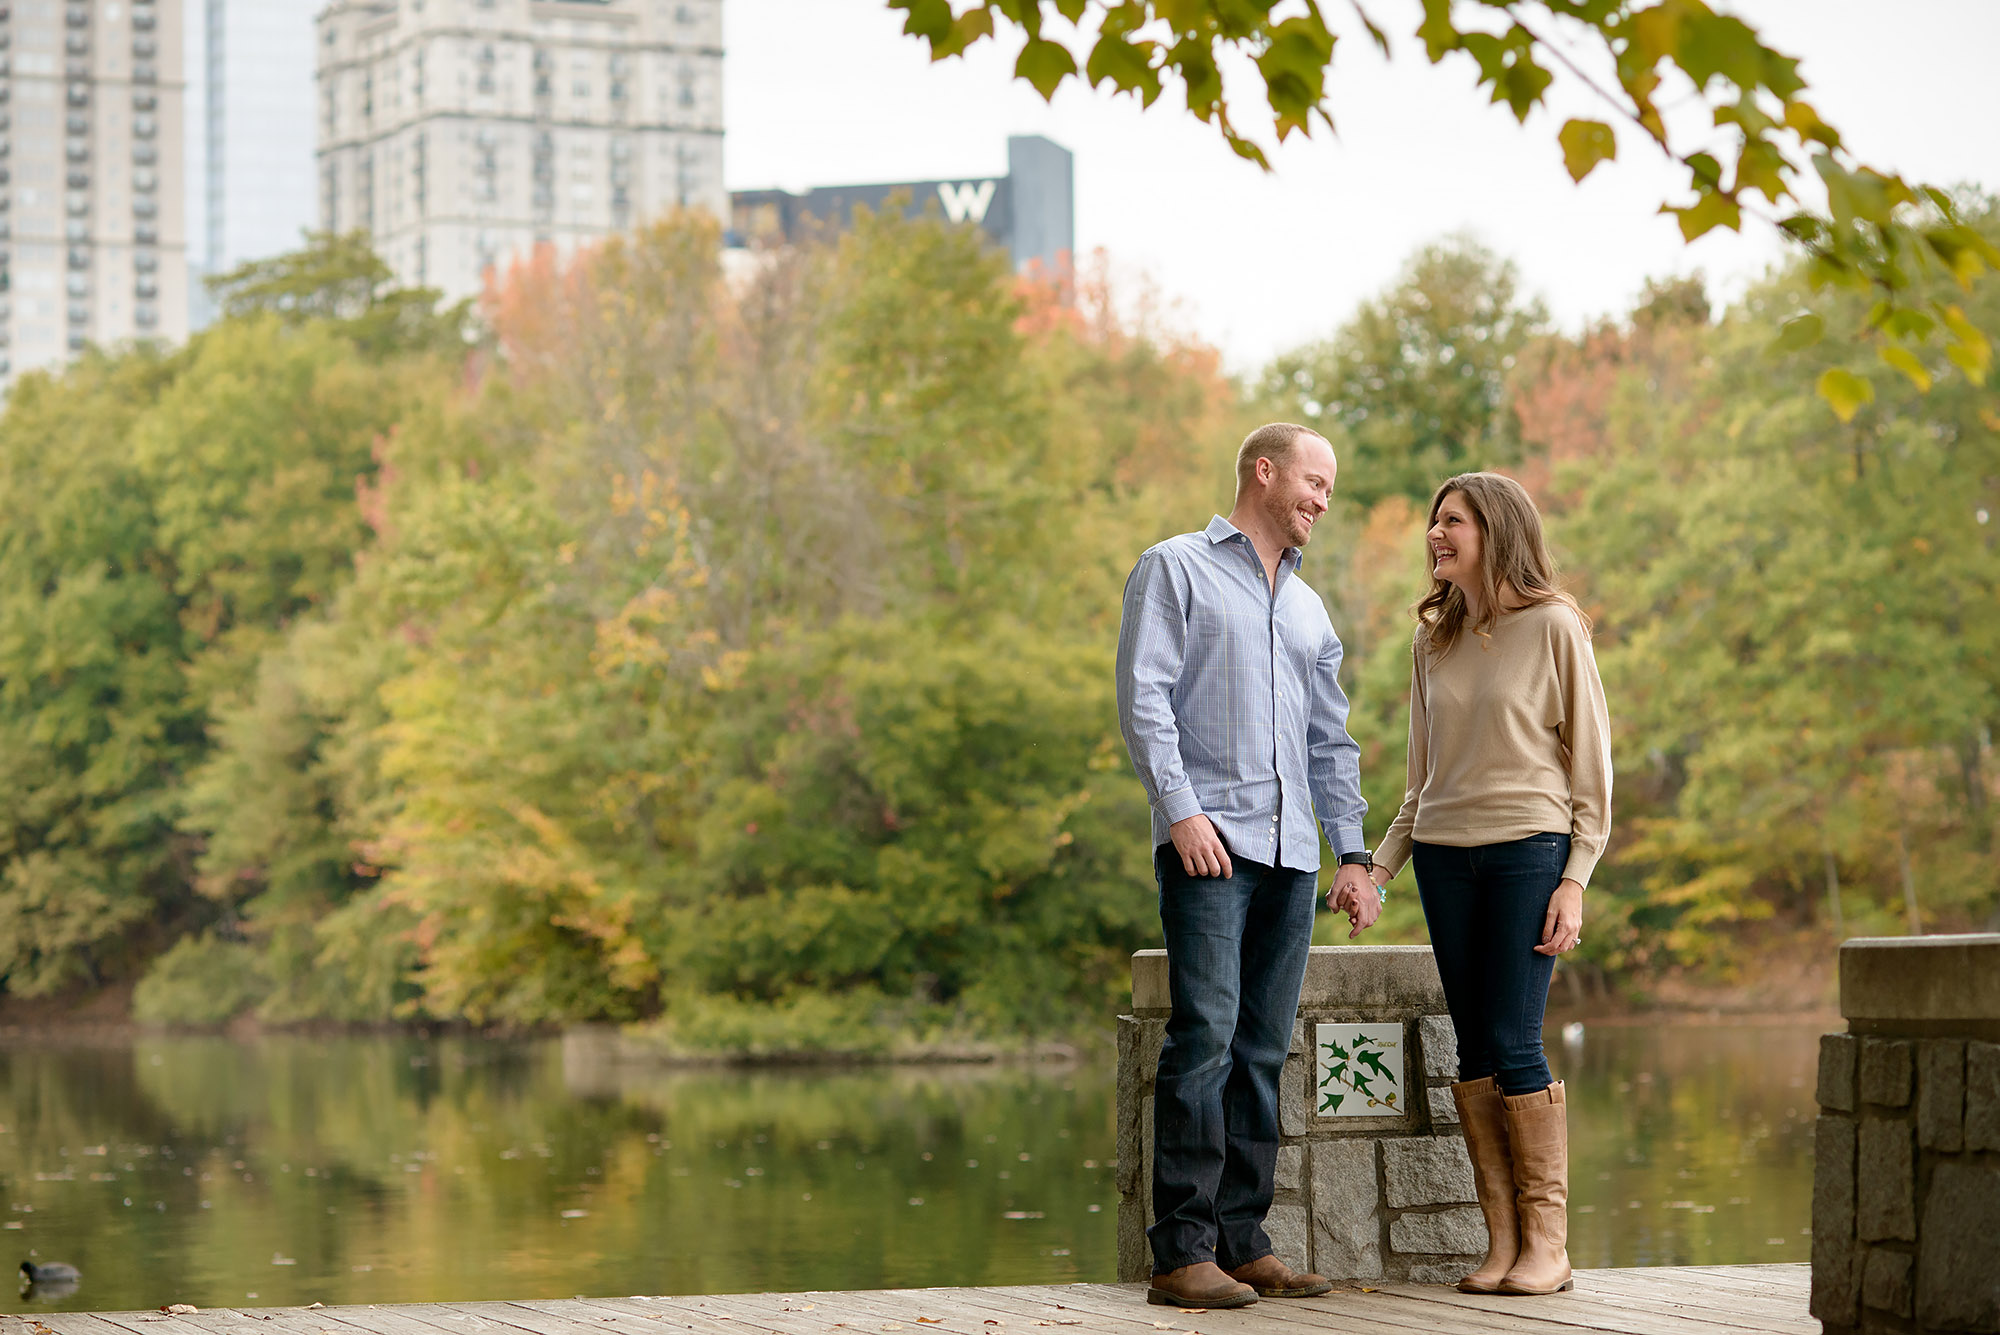 Brett and Georgia | Fall Engagement Shoot at Piedmont Park